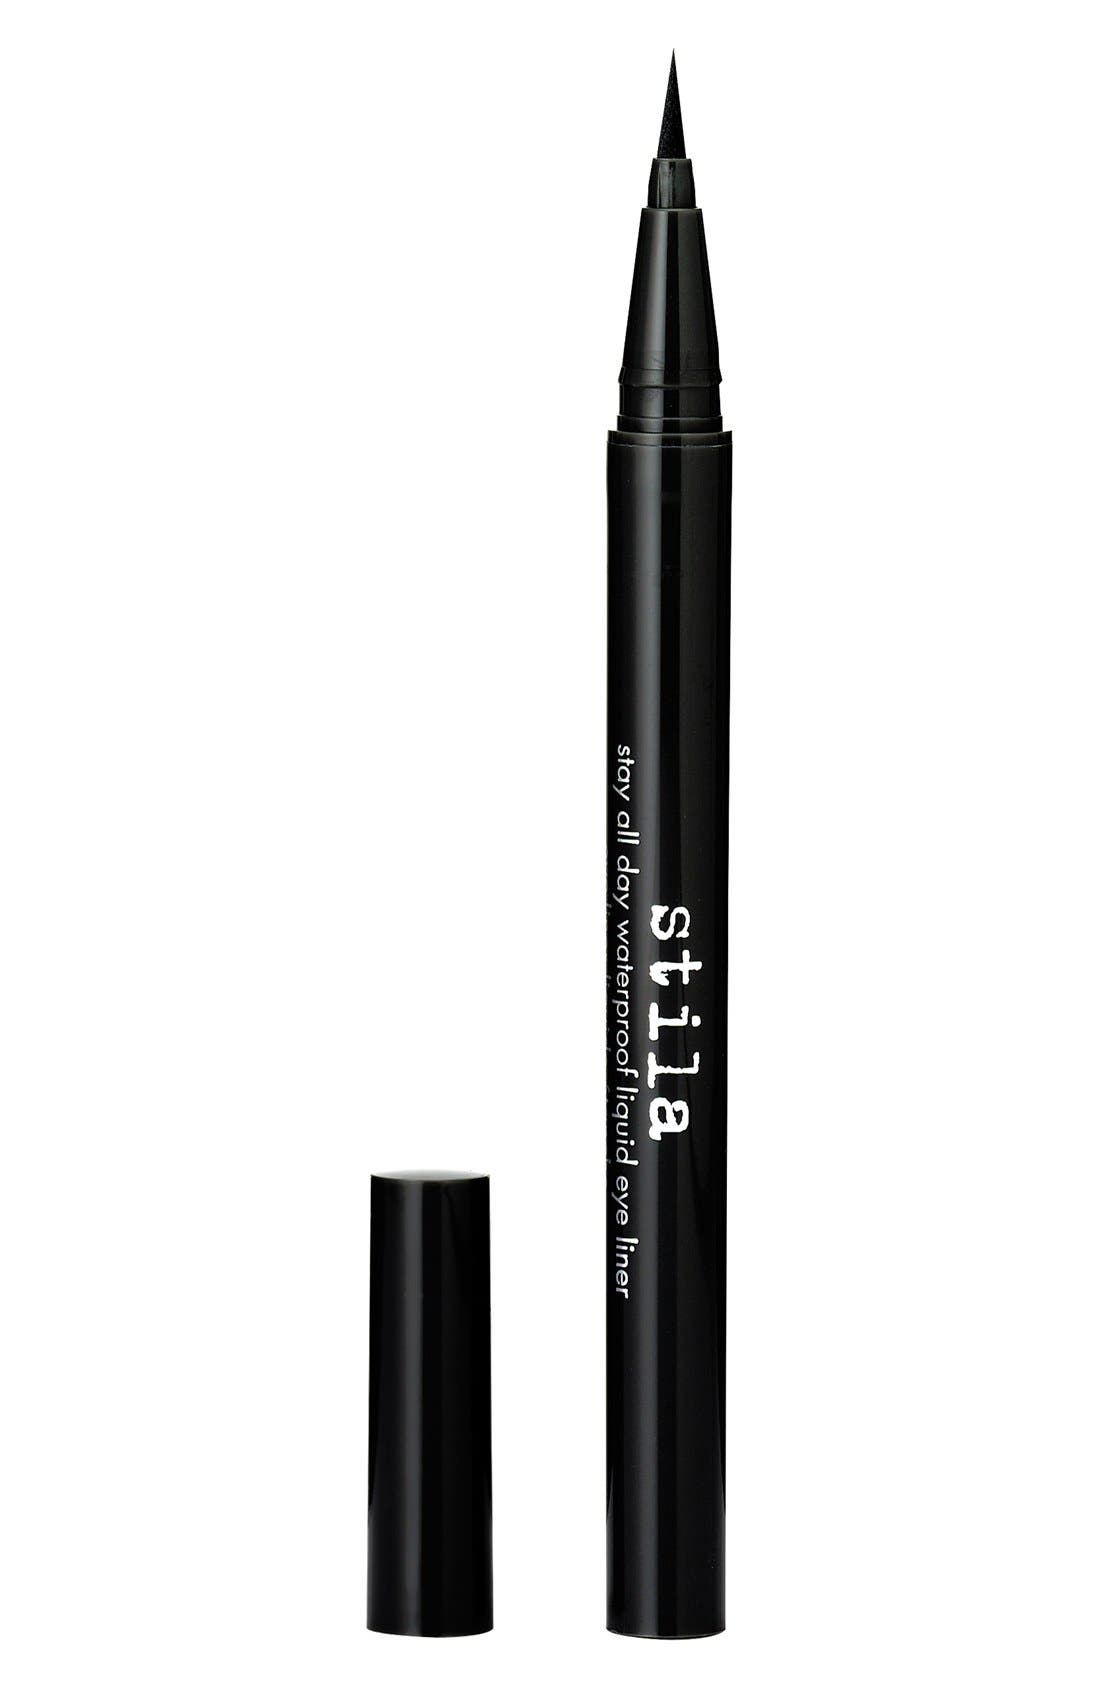 Stila Stay All Day® Waterproof Liquid Eyeliner